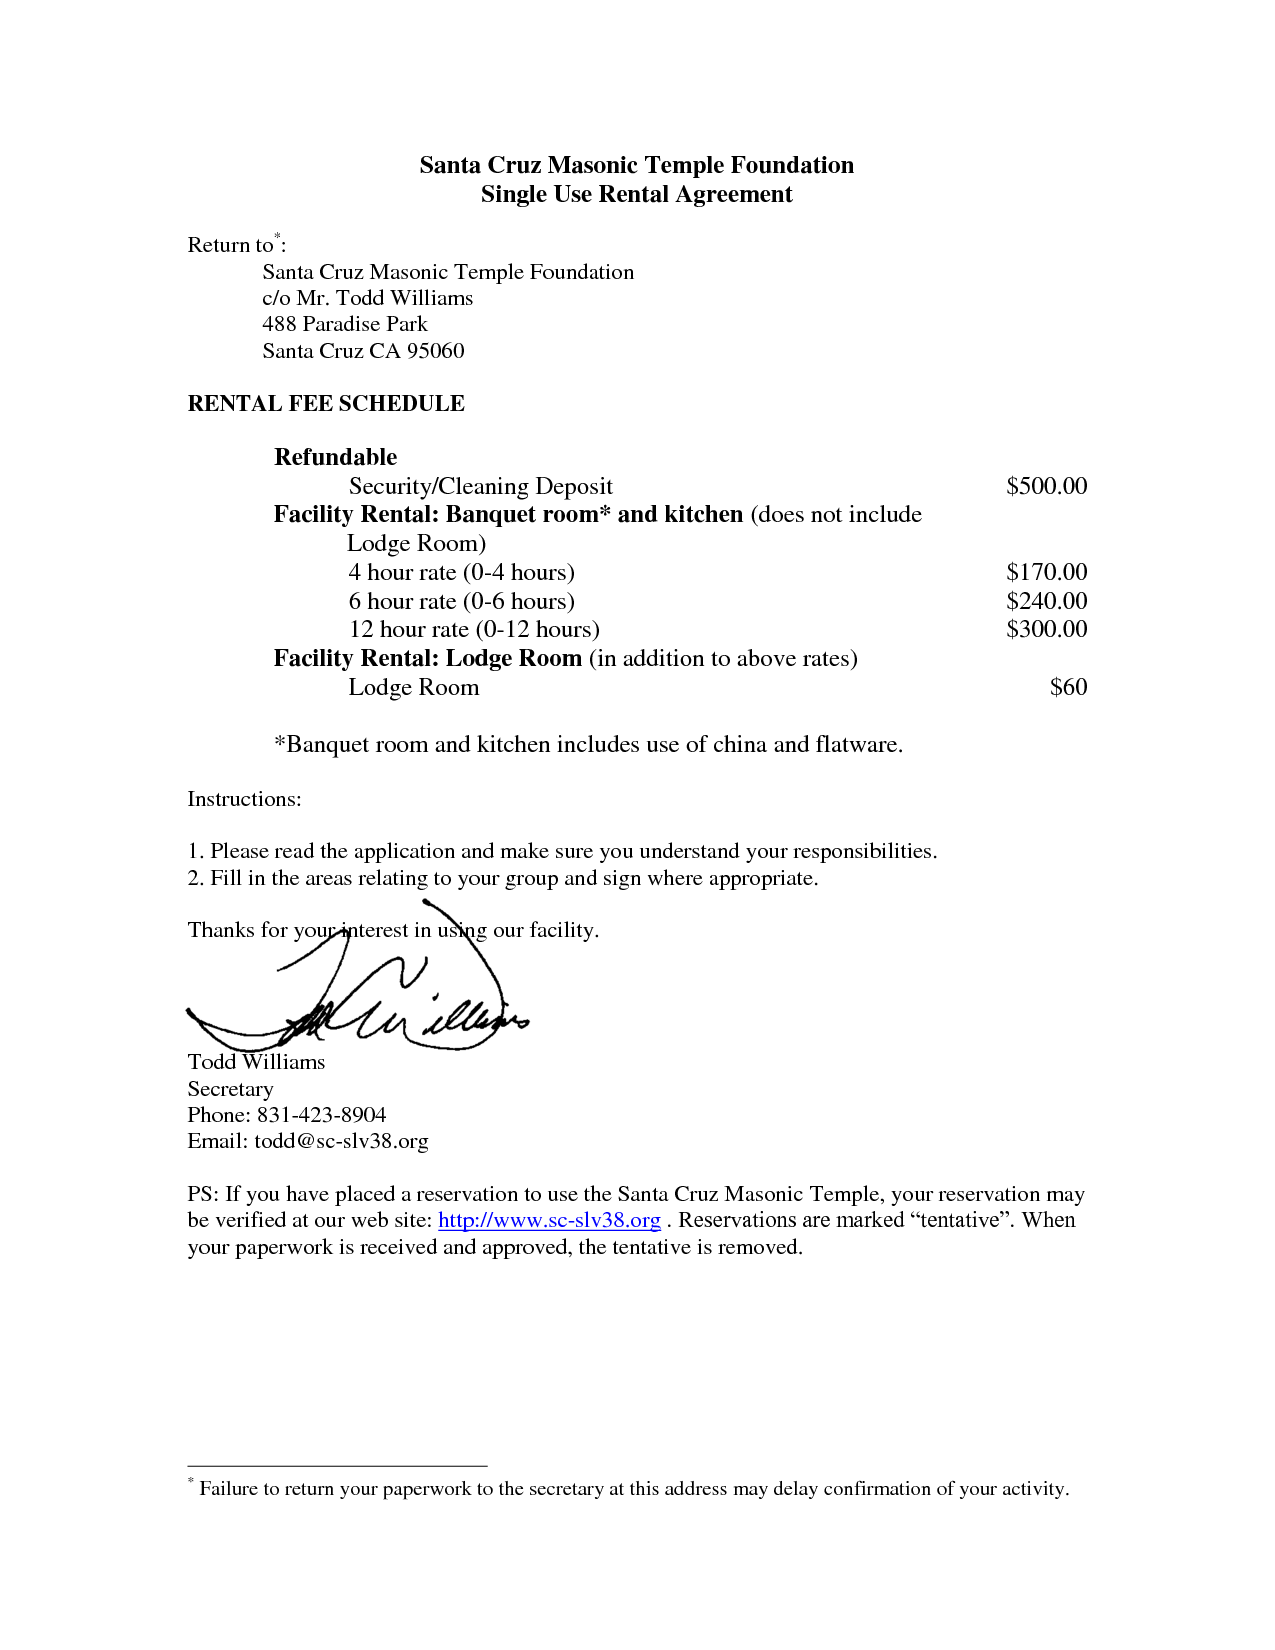 Proof Payment Letter Example And Sample Senior Technical Recruiter